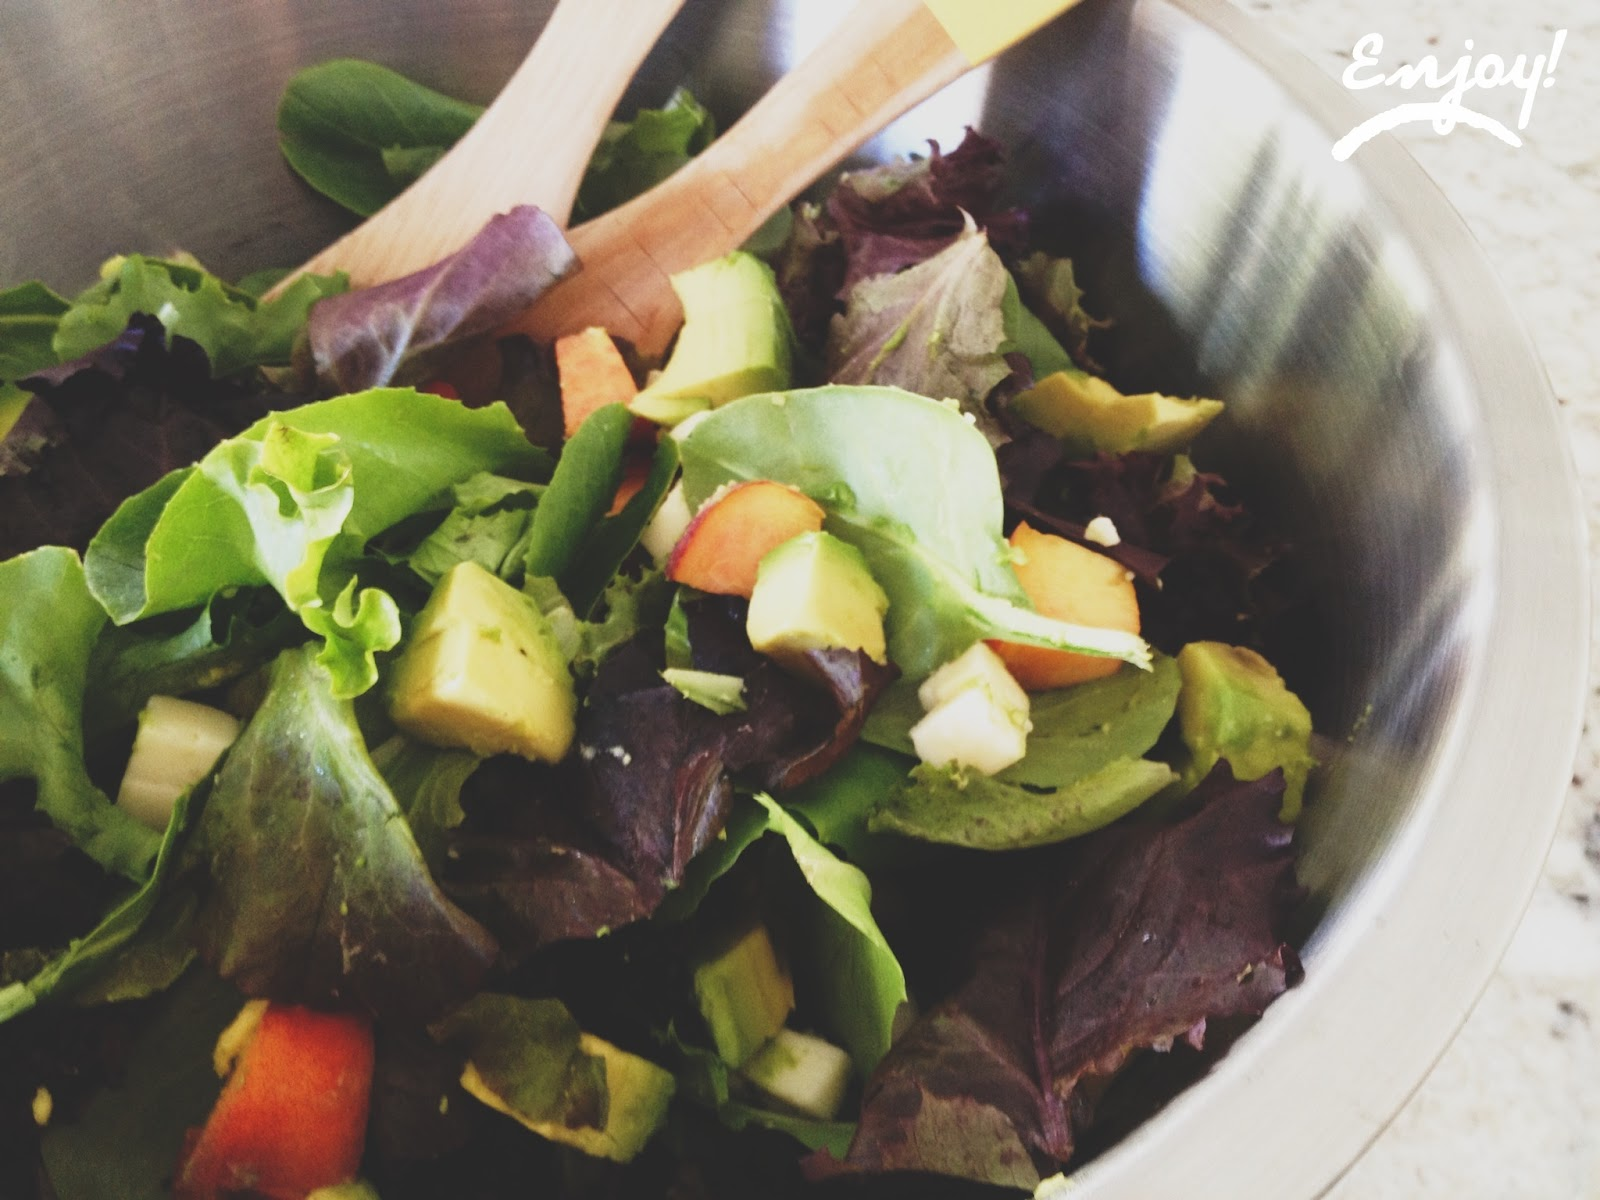 LIFE IS SWEET: My Favorite Summer/Fall Salad